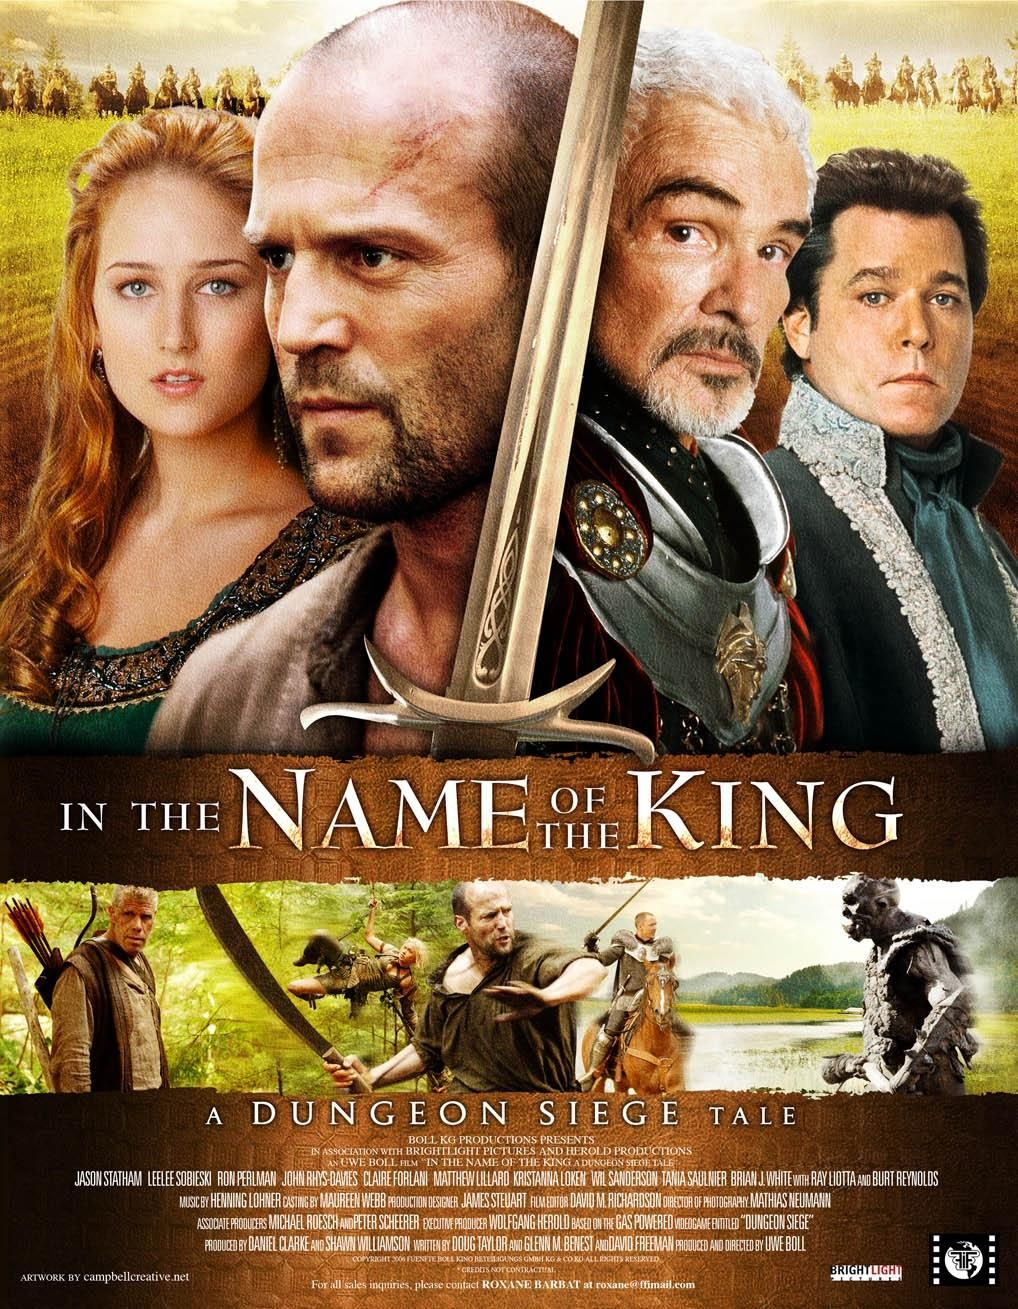 In the Name of the King - A Dungeon Siege Tale - film ...